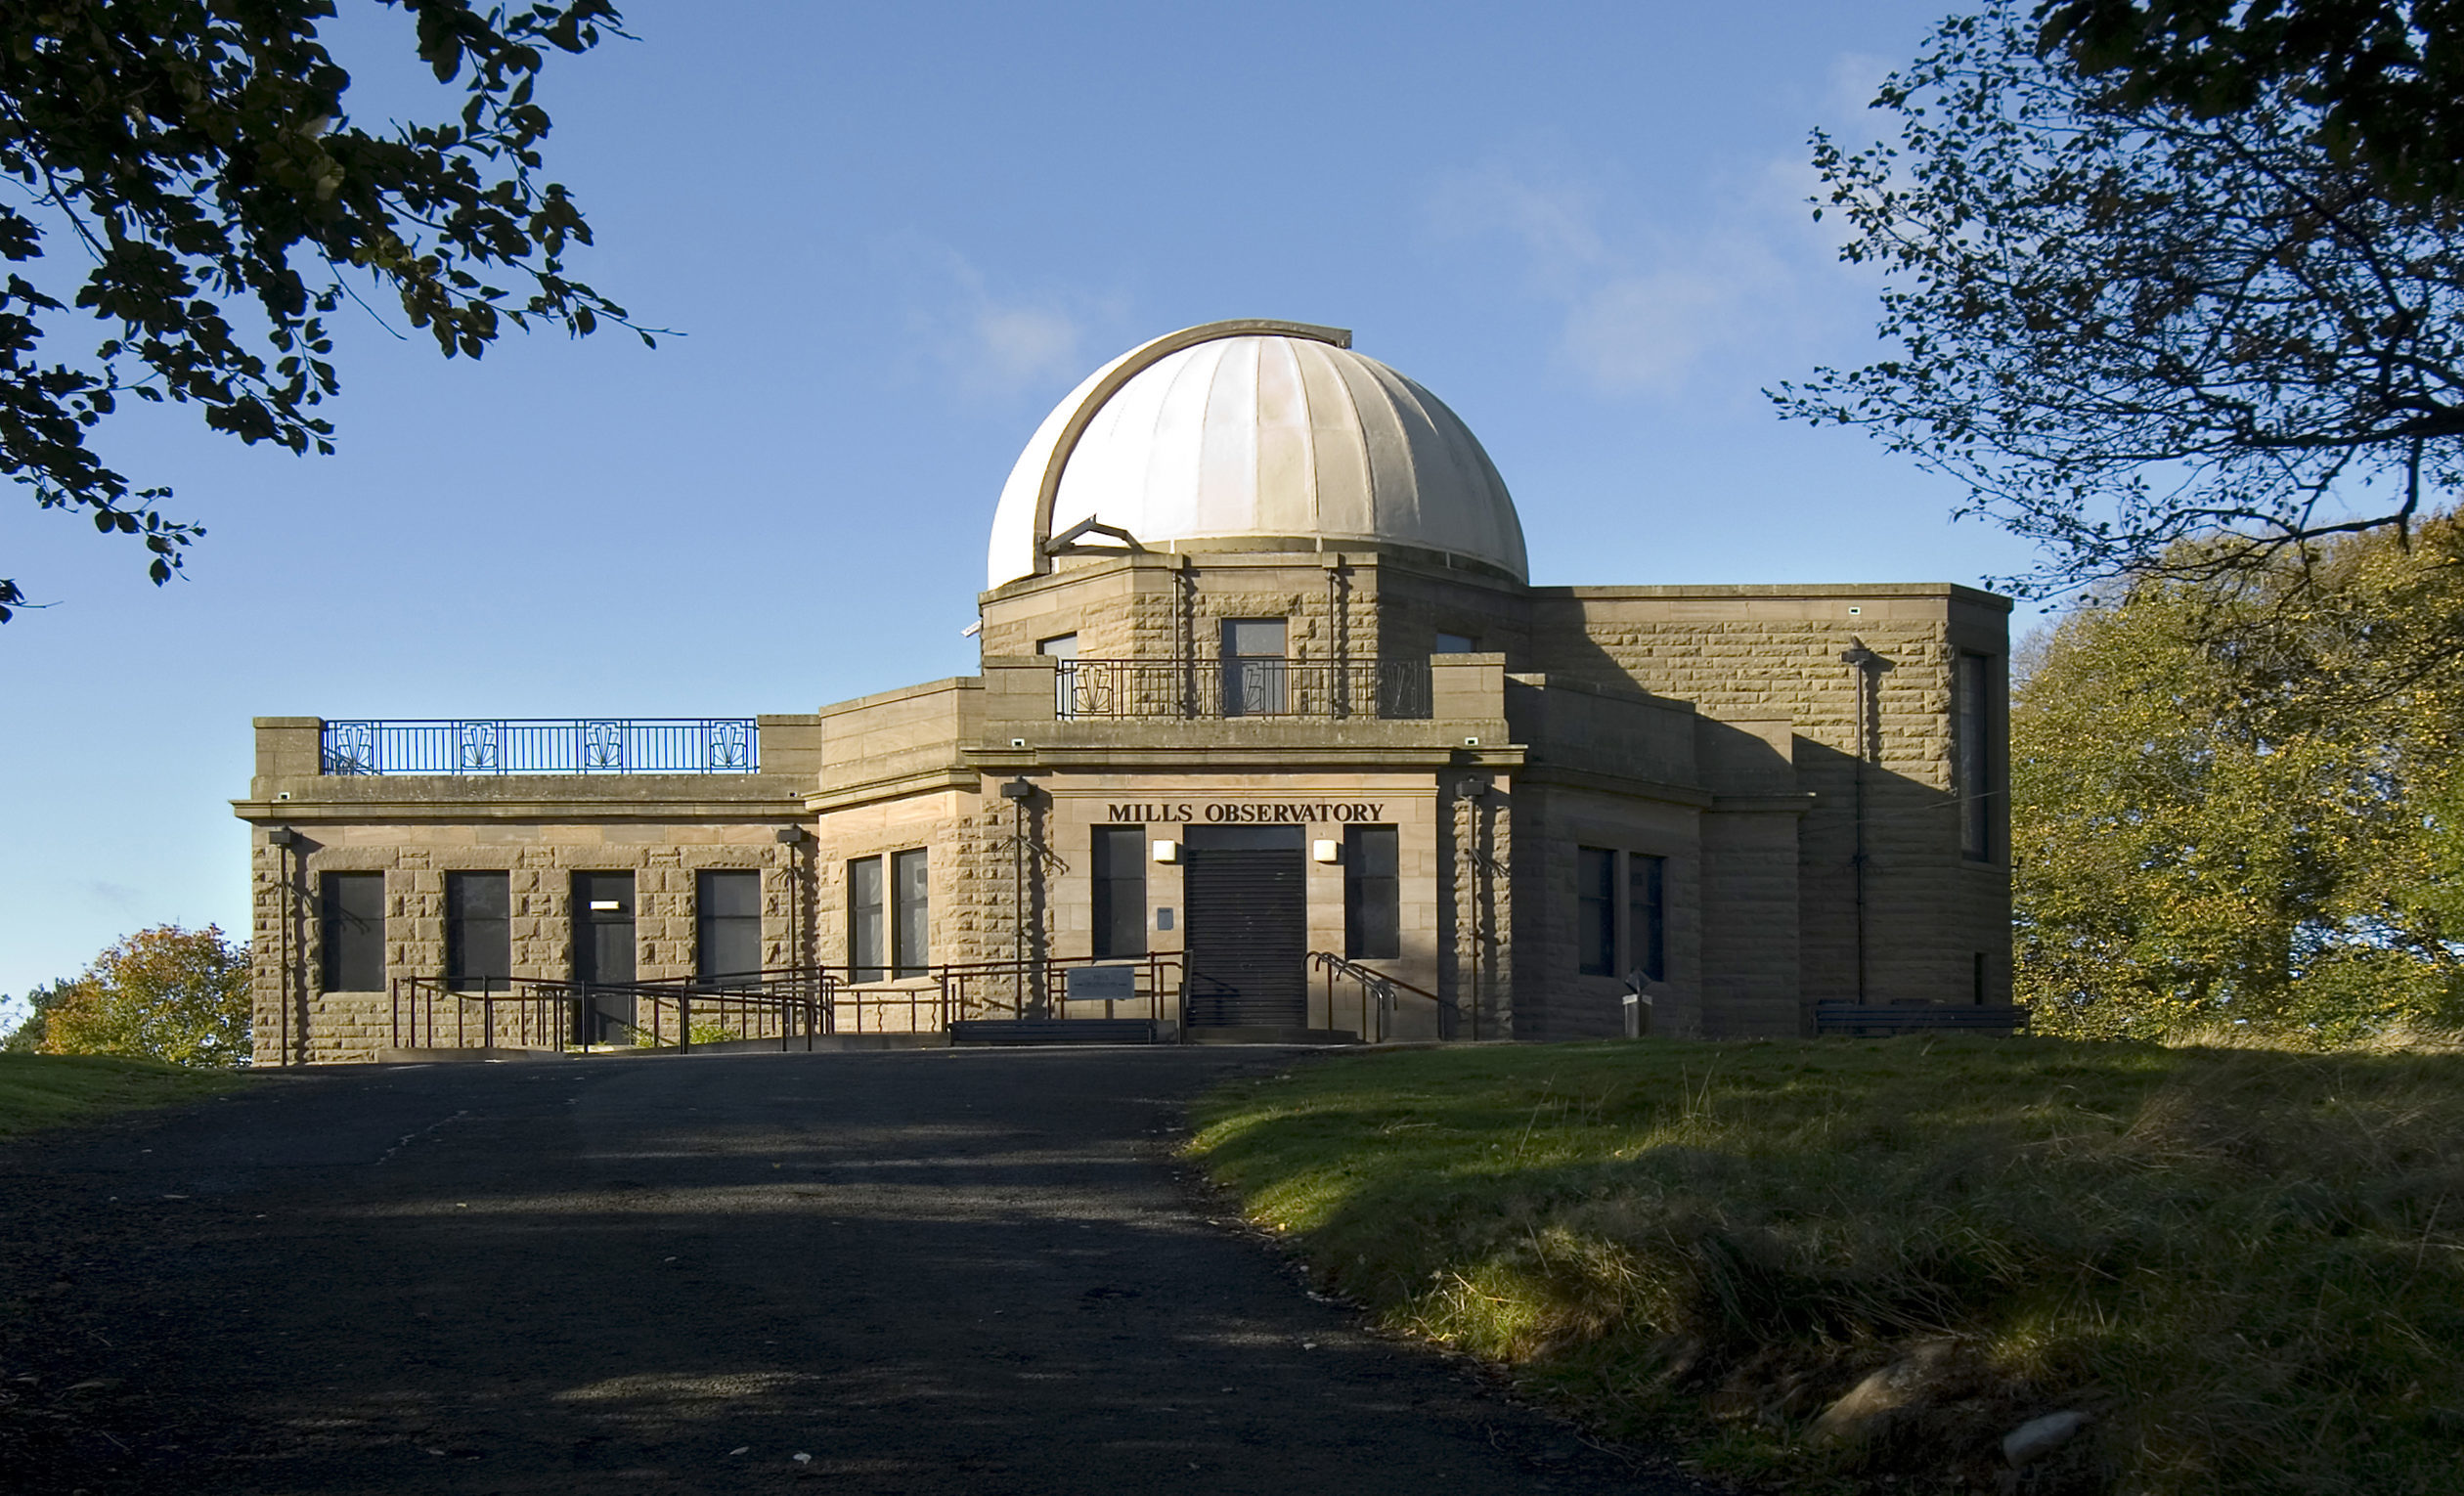 Mills Observatory dates back to 1935.